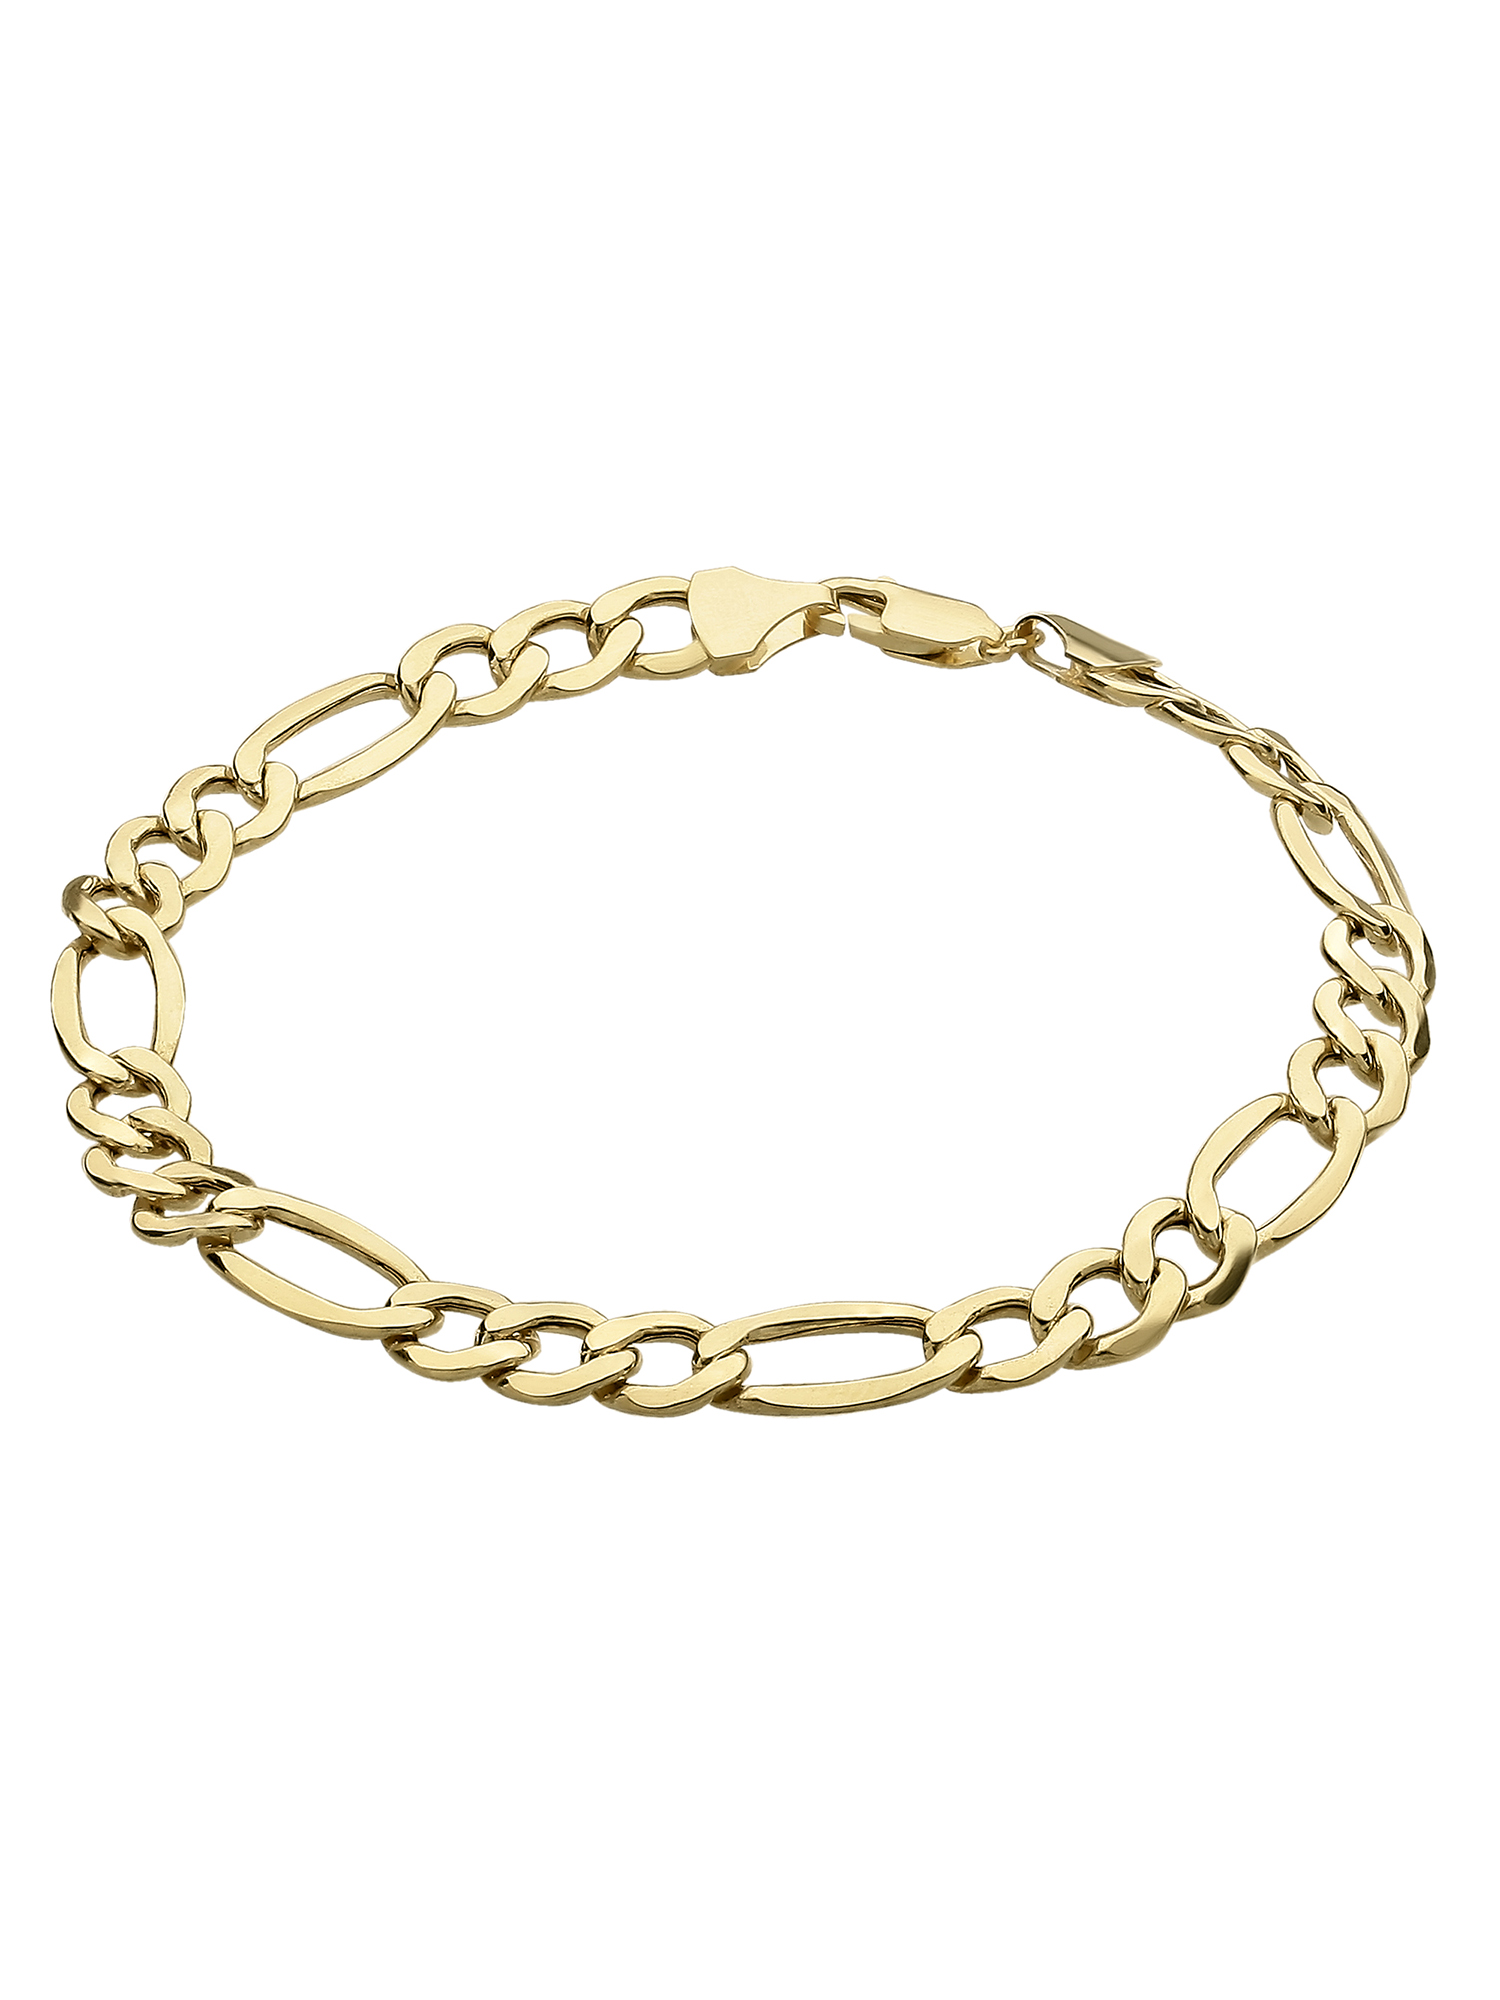 "Simply Gold Men's 10K Yellow Gold 7.55mm Figaro Chain Bracelet, 8.5"" by Richline Group Inc"